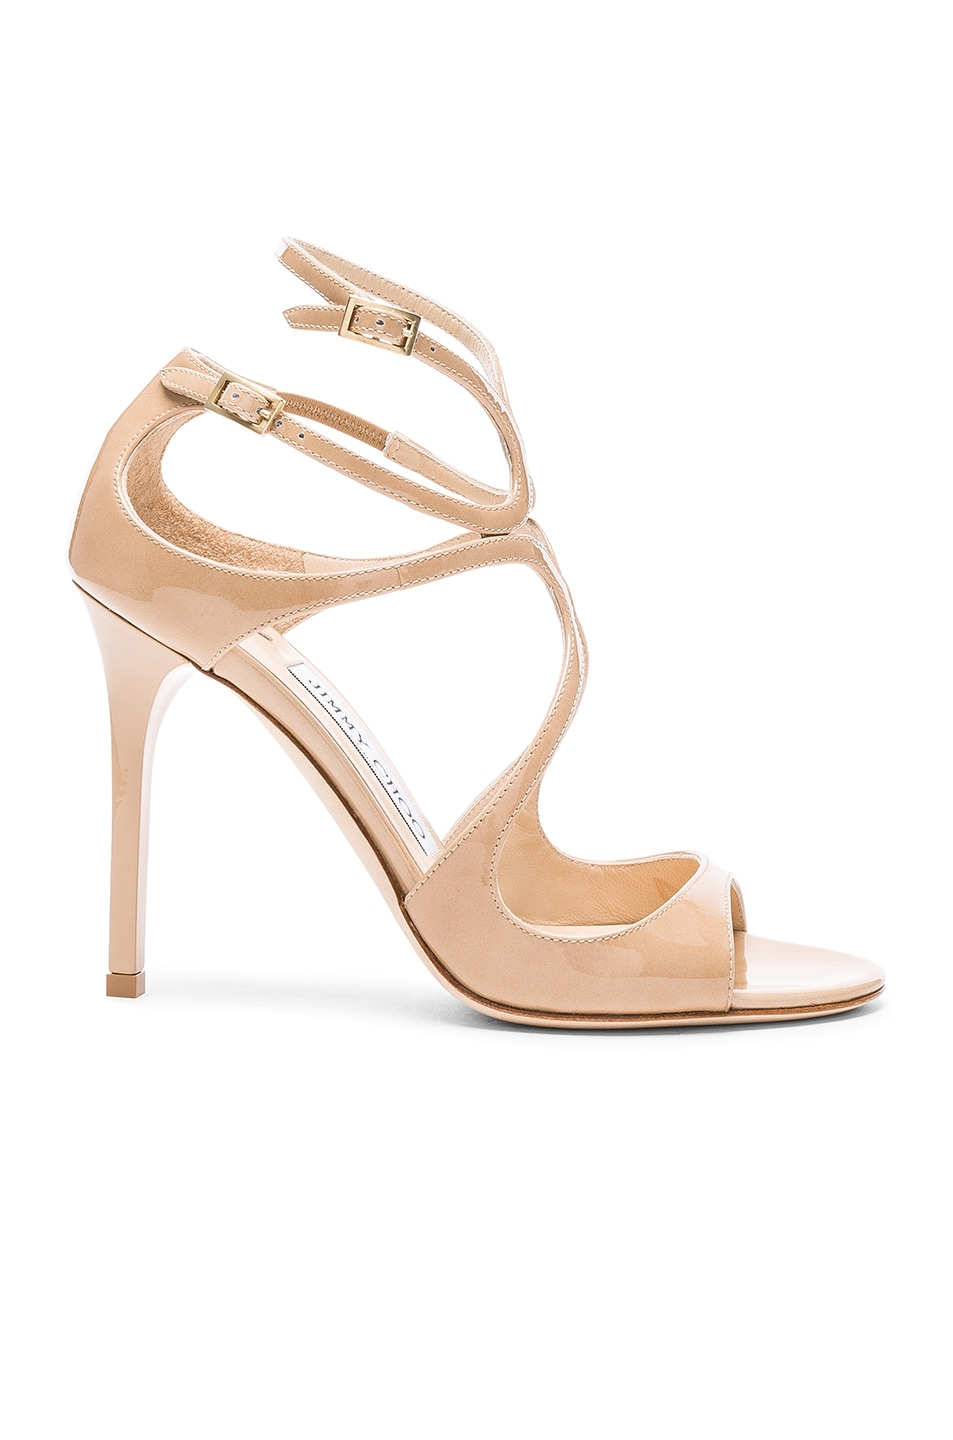 Image 1 of Jimmy Choo Lang 100 Patent Heels in Nude